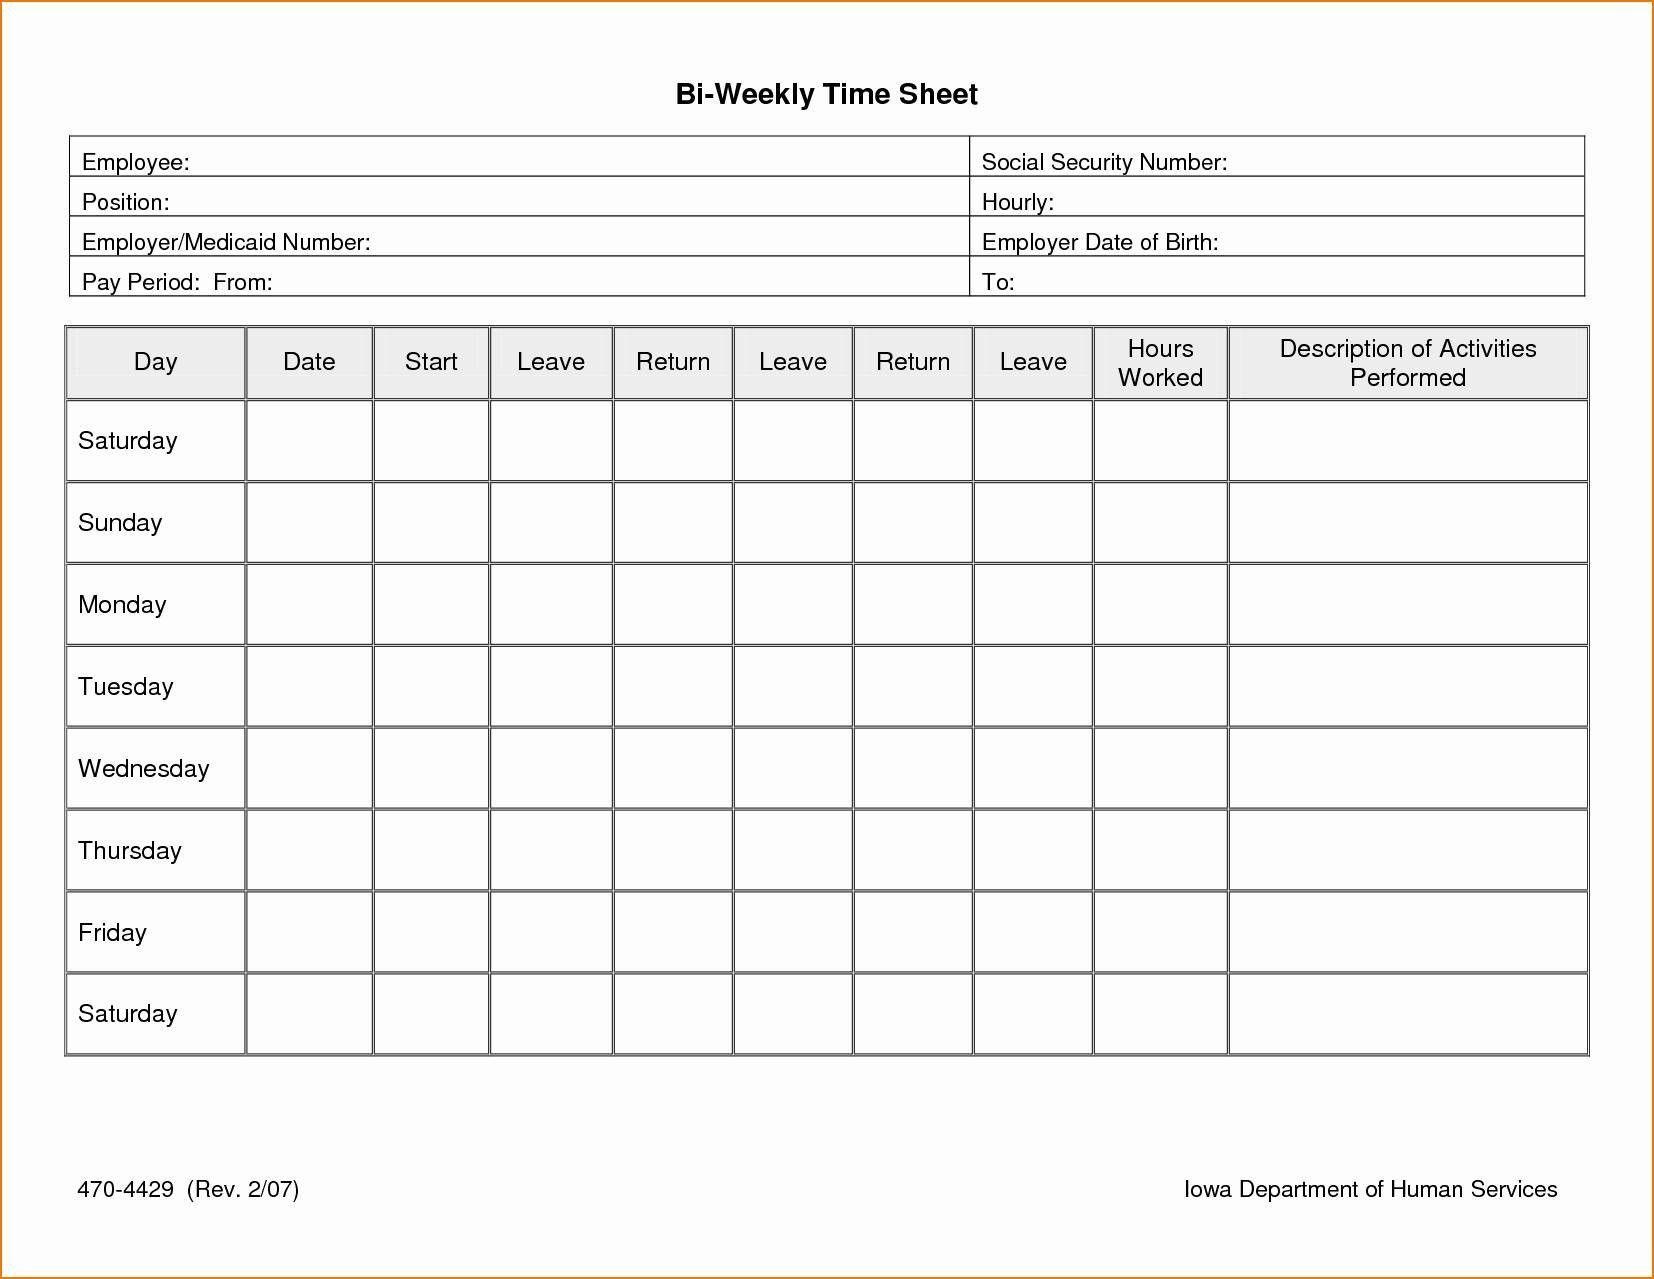 003 Excellent Free Weekly Timesheet Template Example  For Multiple Employee Biweekly Excel With FormulaFull